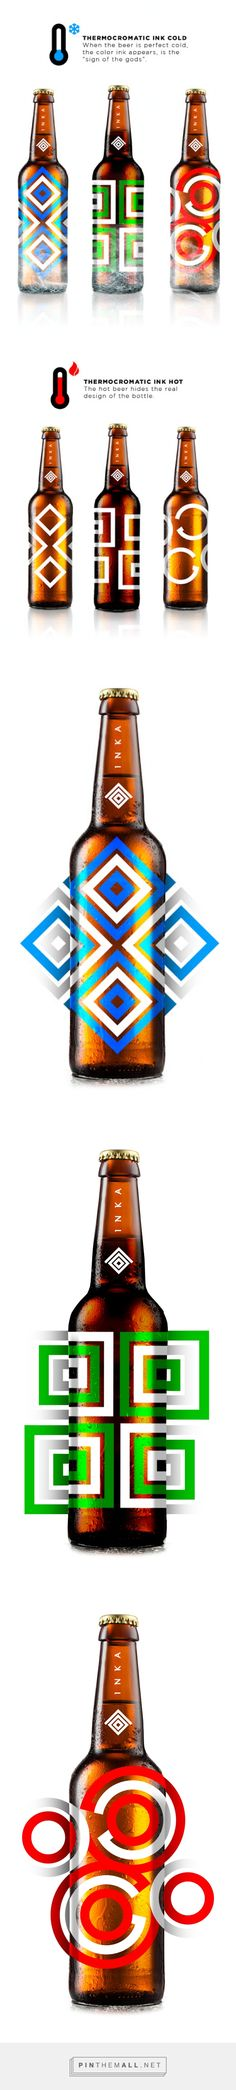 Inka Premium Beer (Concept) by JP Branding. Another great example of how colours, shapes and patterns can add to a design.